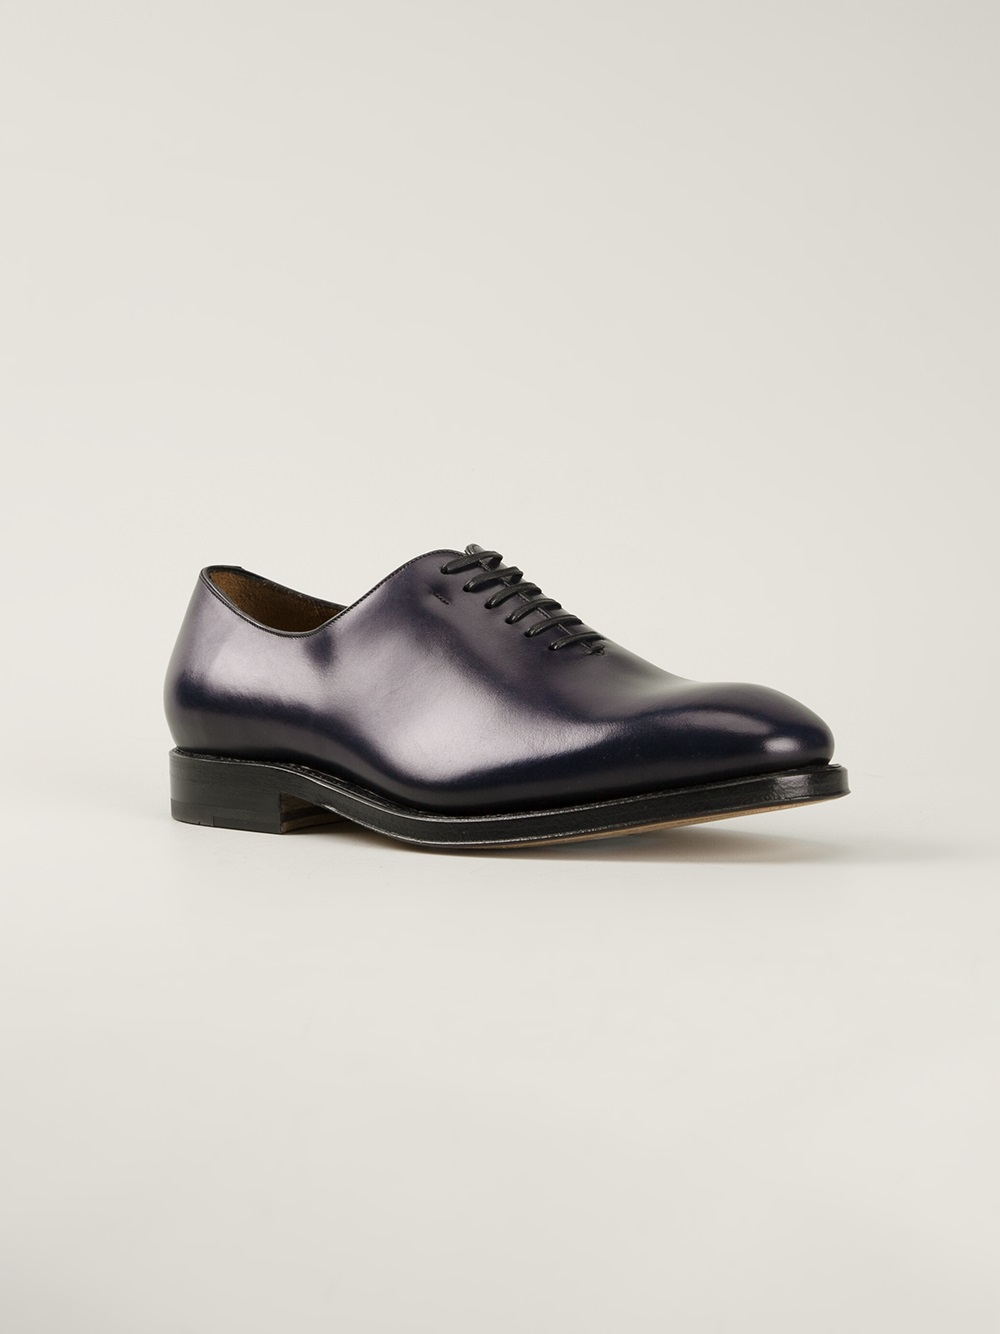 Ferragamo Classic Oxford Shoes In Blue For Men | Lyst